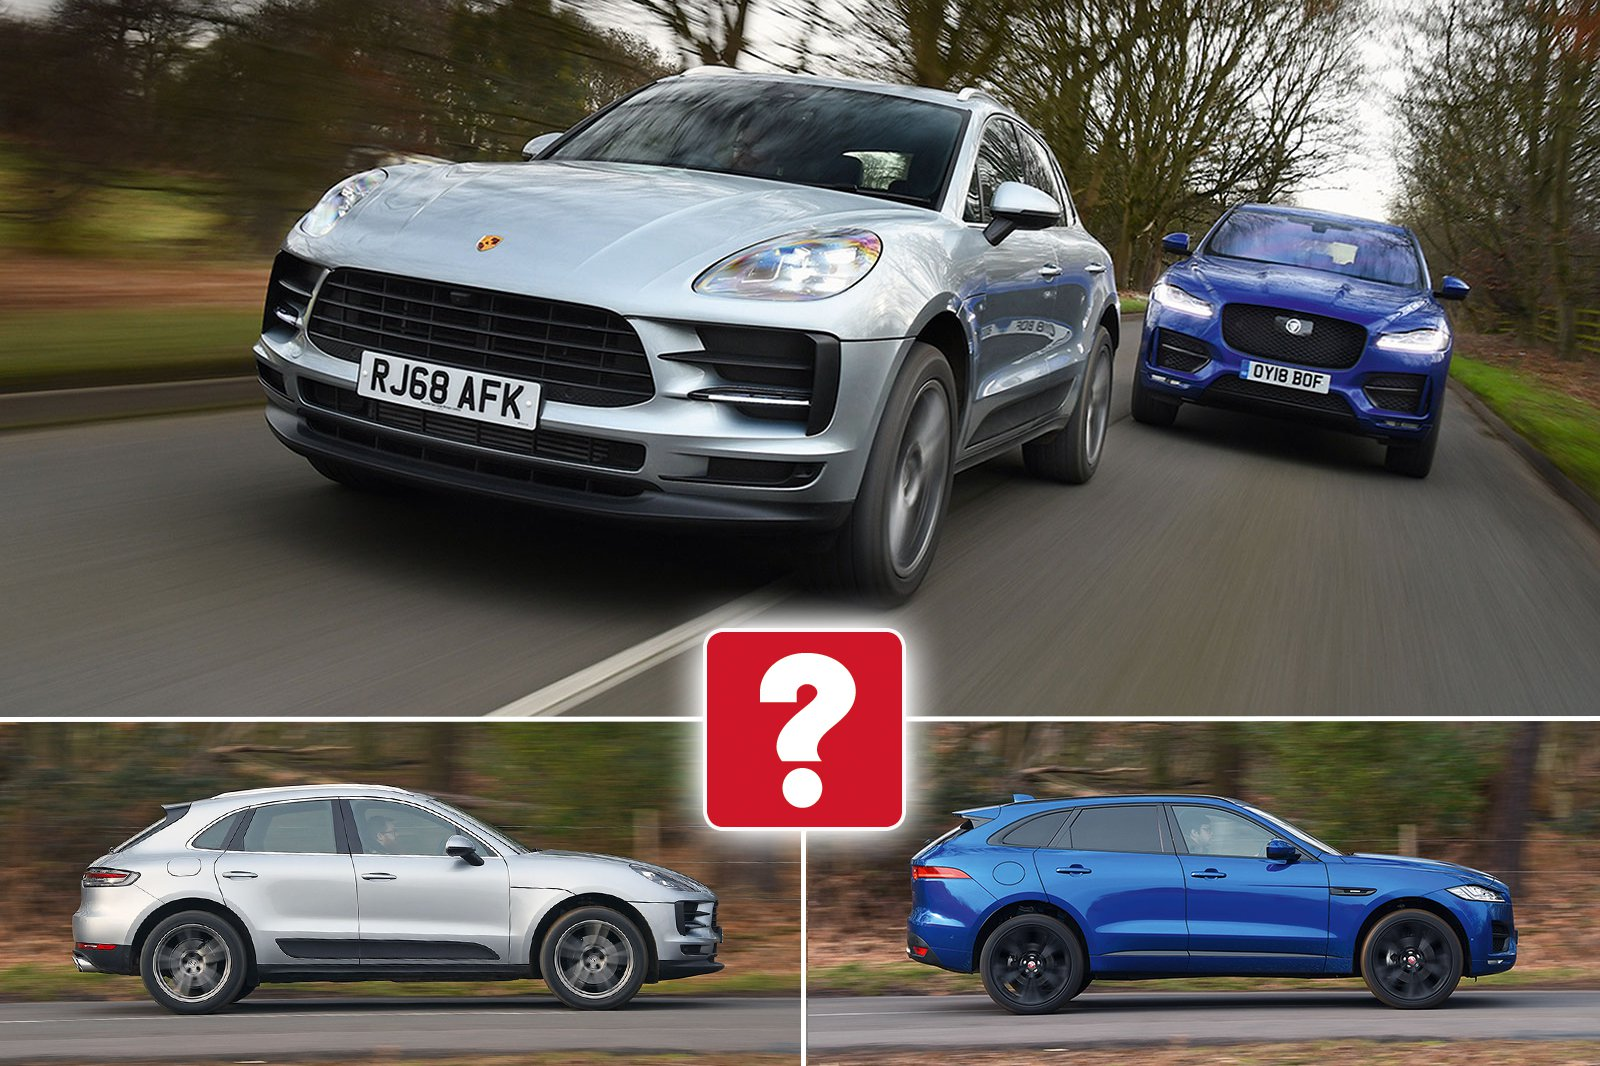 New Porsche Macan vs Jaguar F-Pace